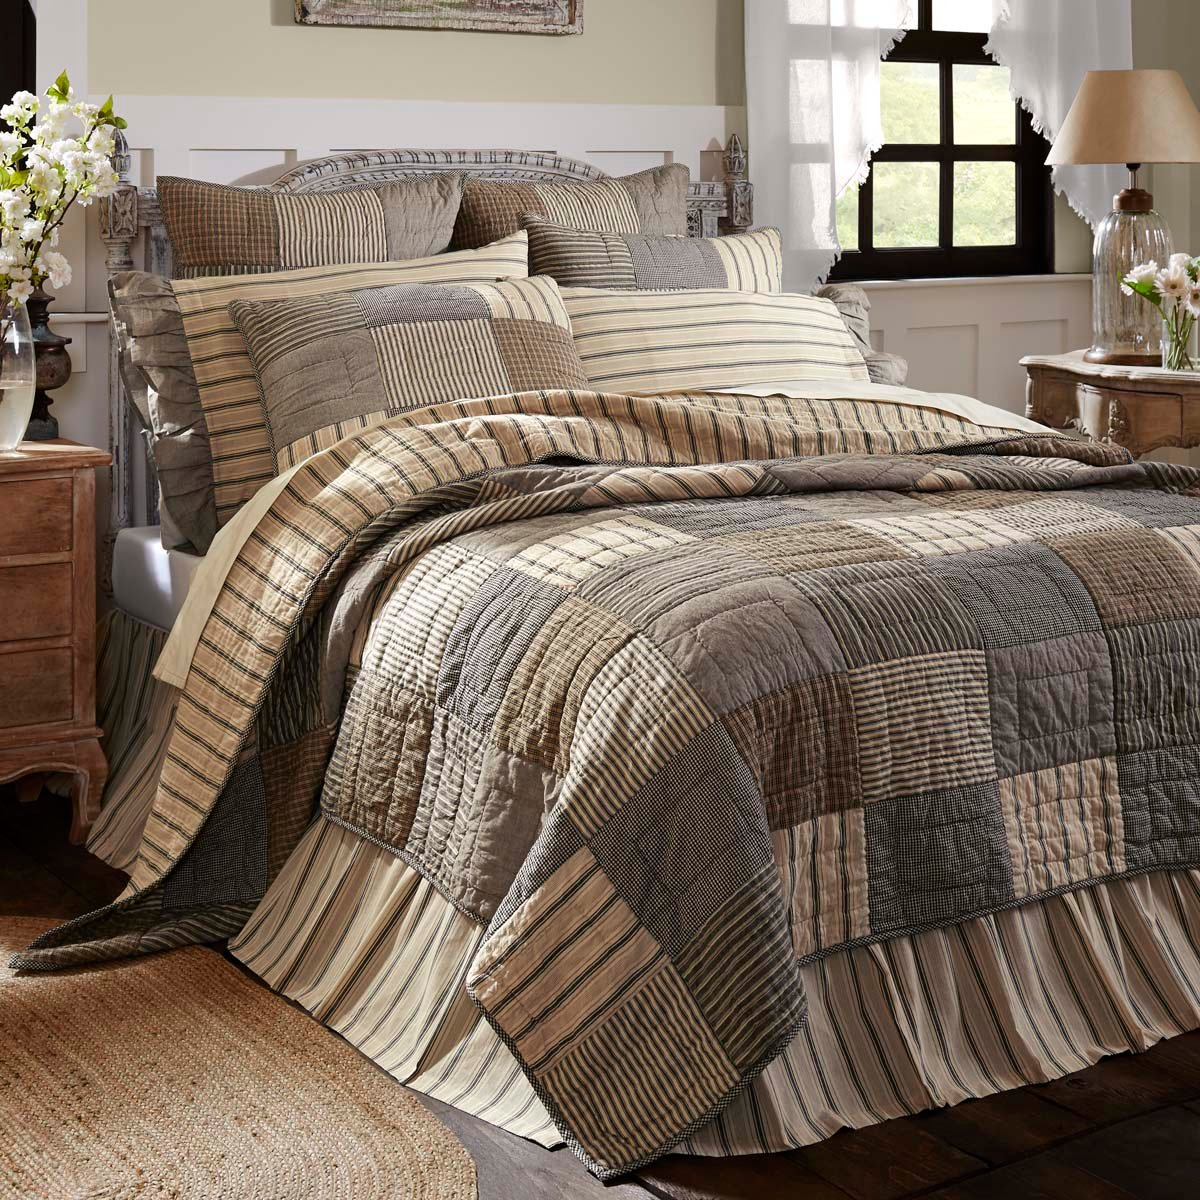 Quilts & Bedding